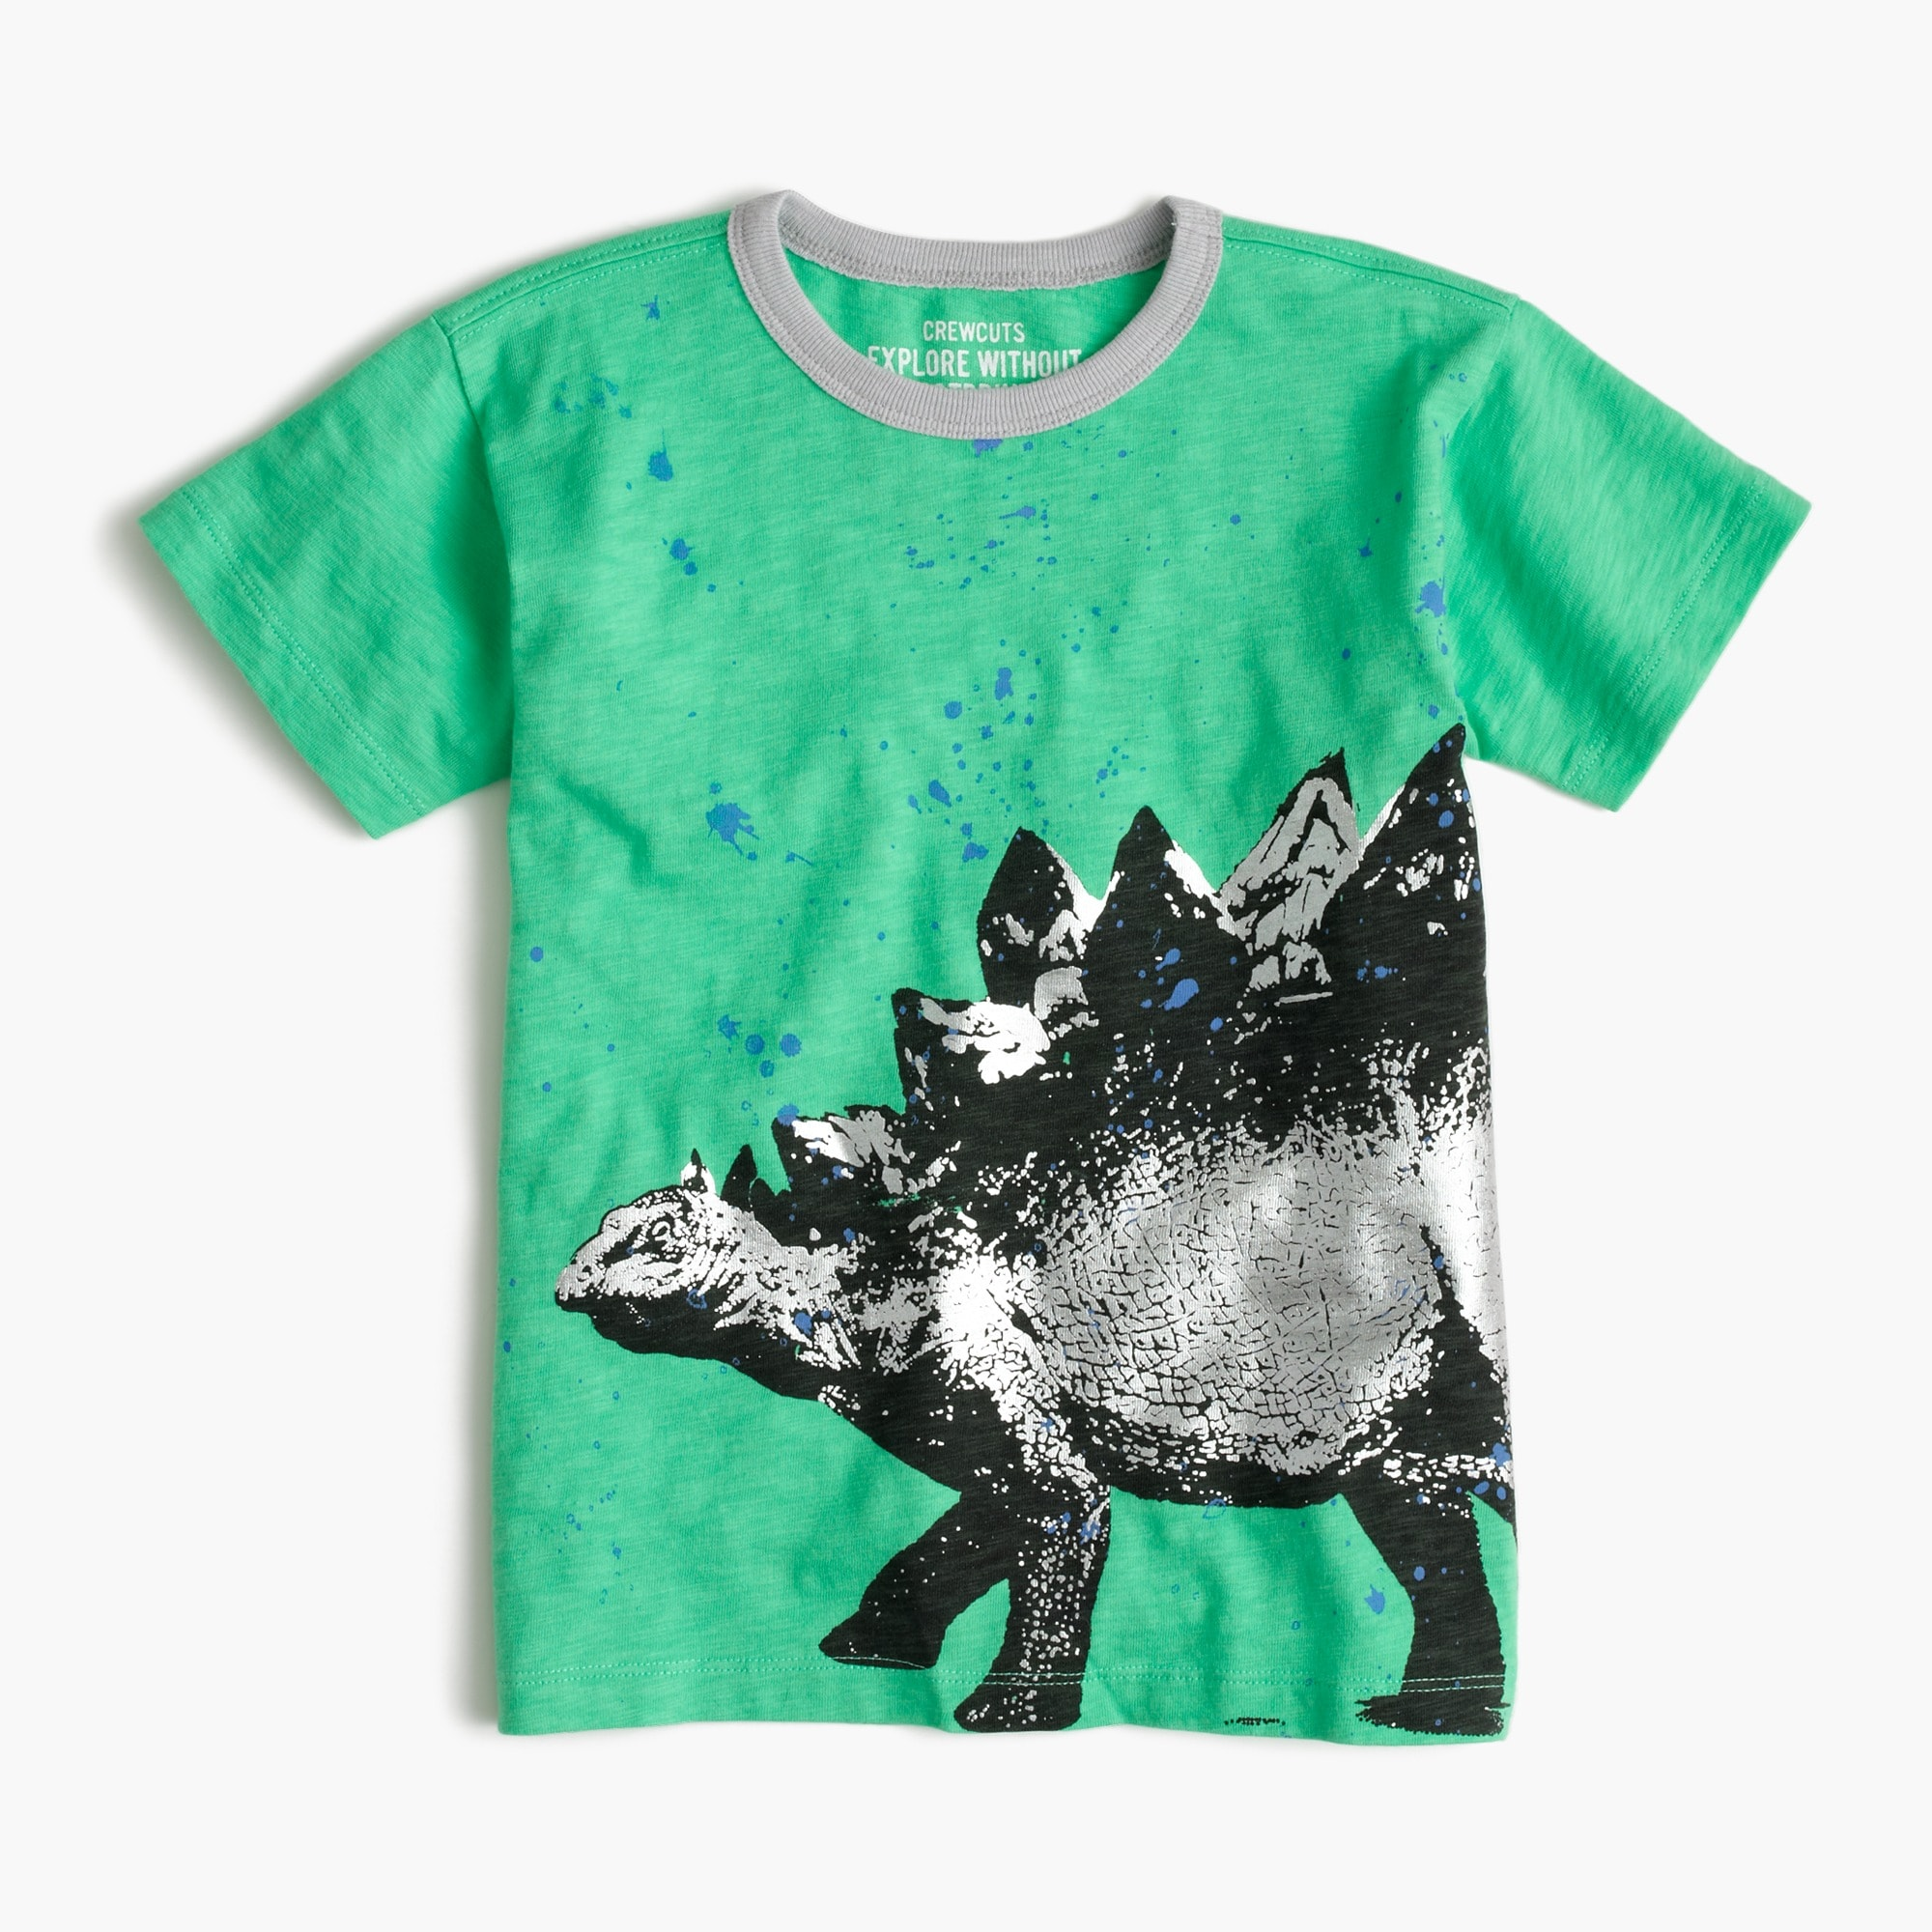 Image 1 for Boys' stegosaurus splatter T-shirt